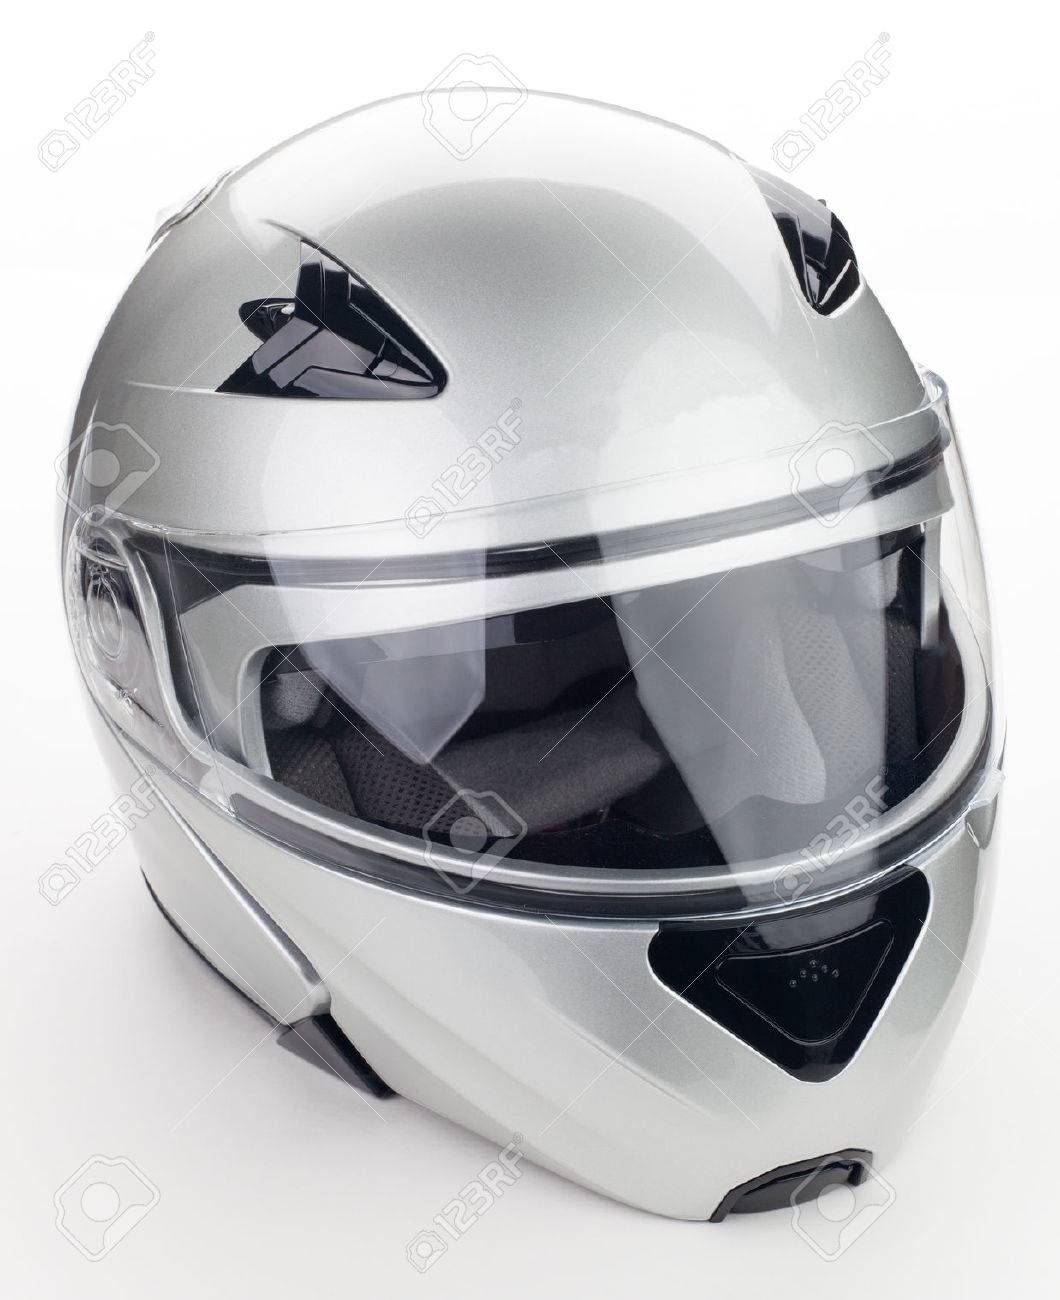 High quality light gray motorcycle helmet over white background, studio isolated - 27712726